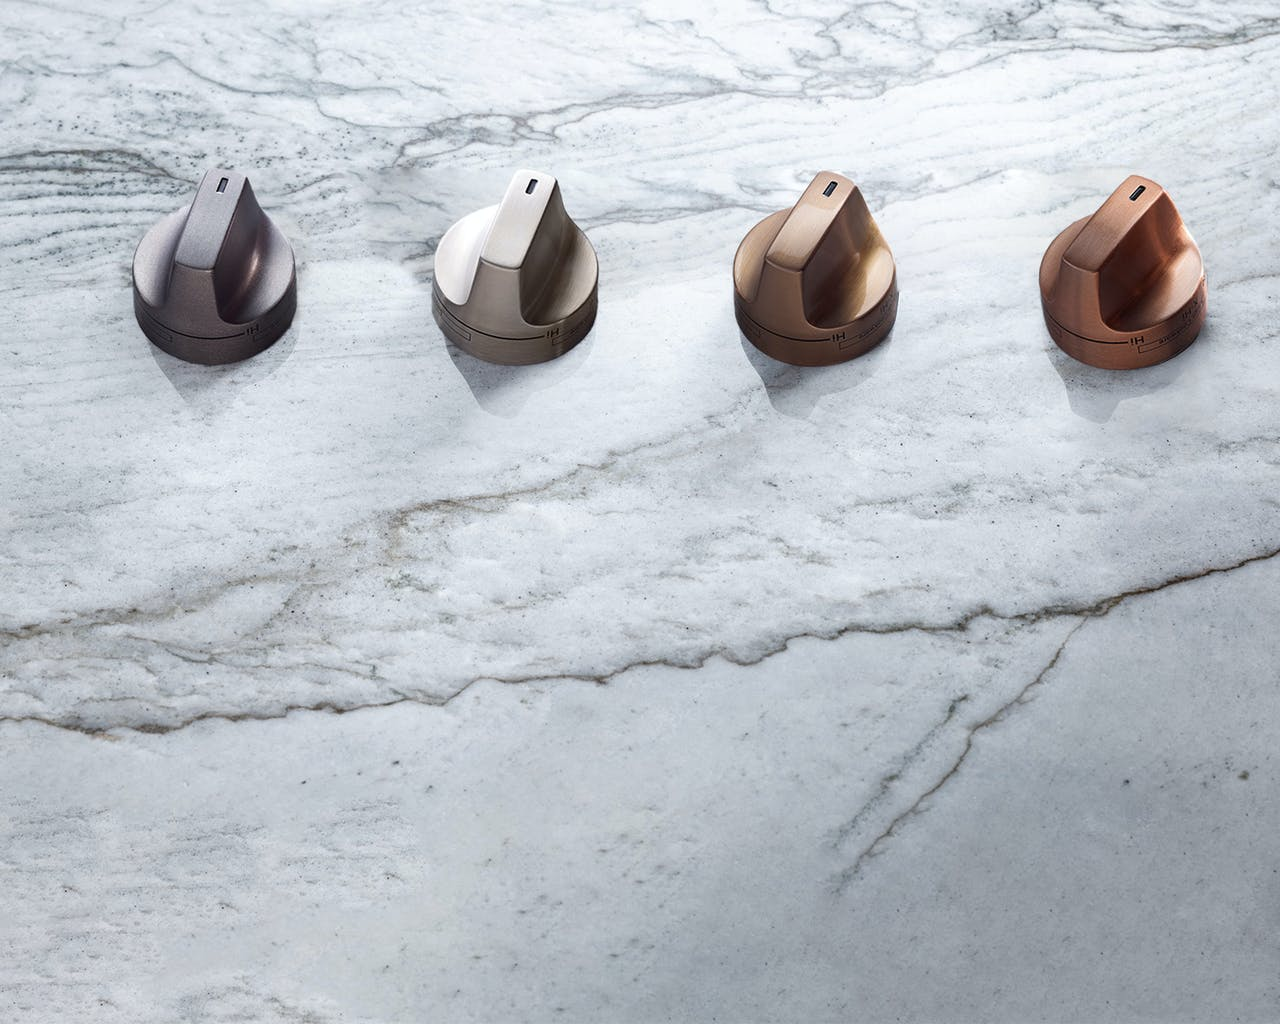 4 knobs on marble background. brushed black, brushed stainless, brushed bronze, brushed copper.